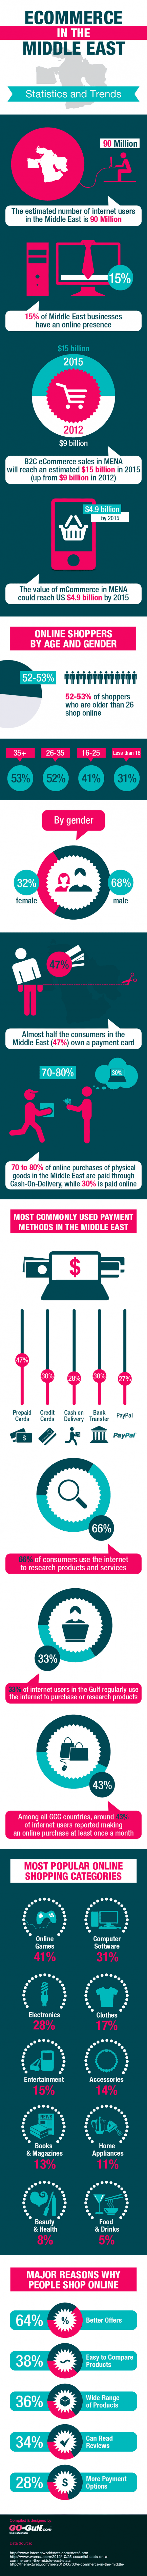 E-commerce in the Middle East Statistics and Trends